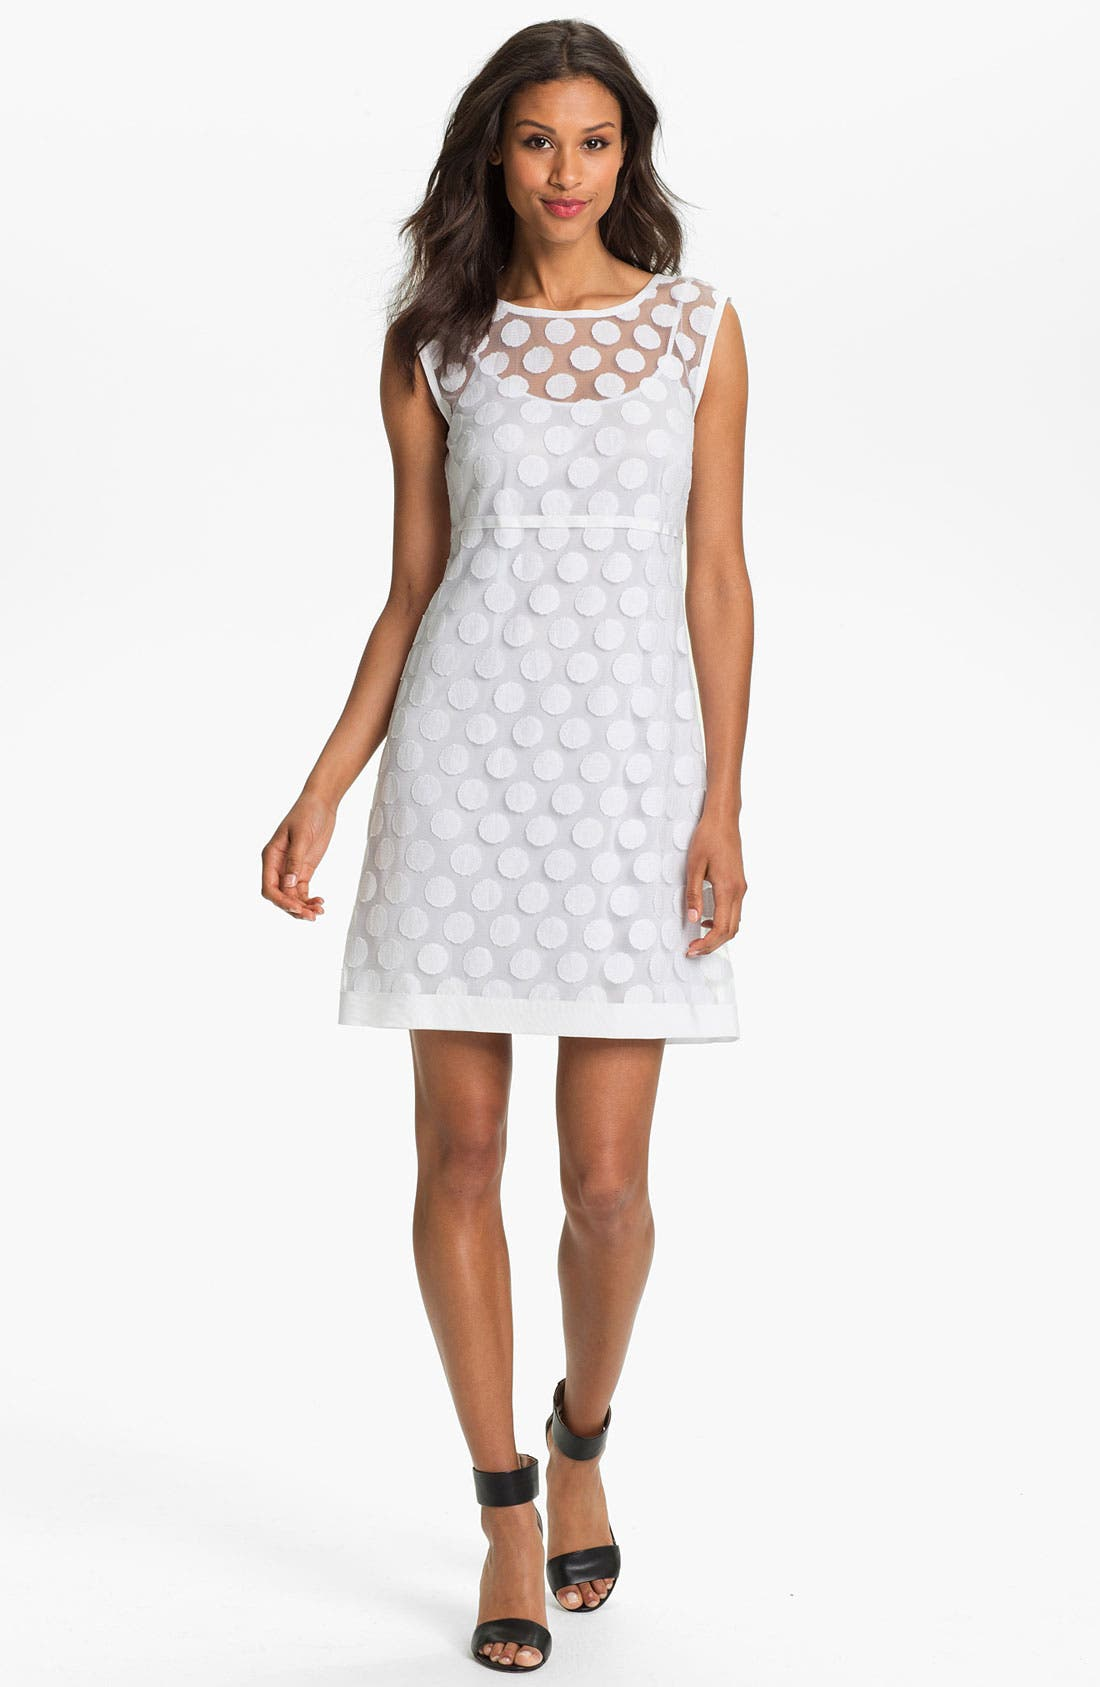 Alternate Image 1 Selected - Laundry by Shelli Segal Polka Dot Lace A-Line Dress